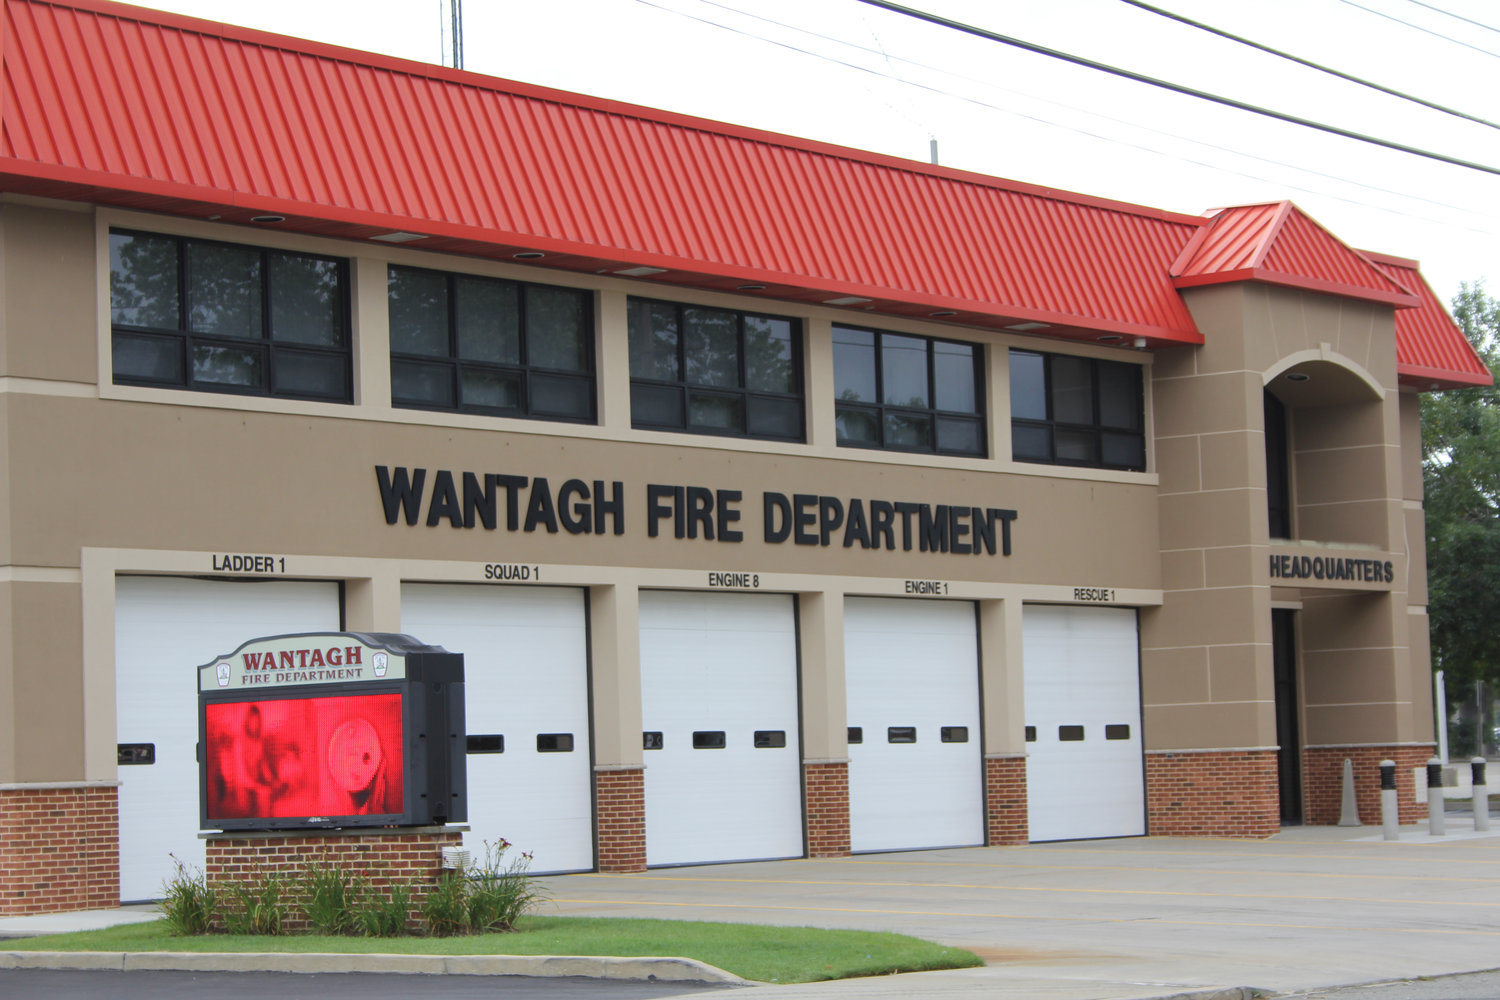 About 100 people gathered at the Wantagh Fire Department on Nov. 29 to hear Police Commissioner Patrick Ryder and his colleagues discuss Nassau County's fight against opioid abuse.